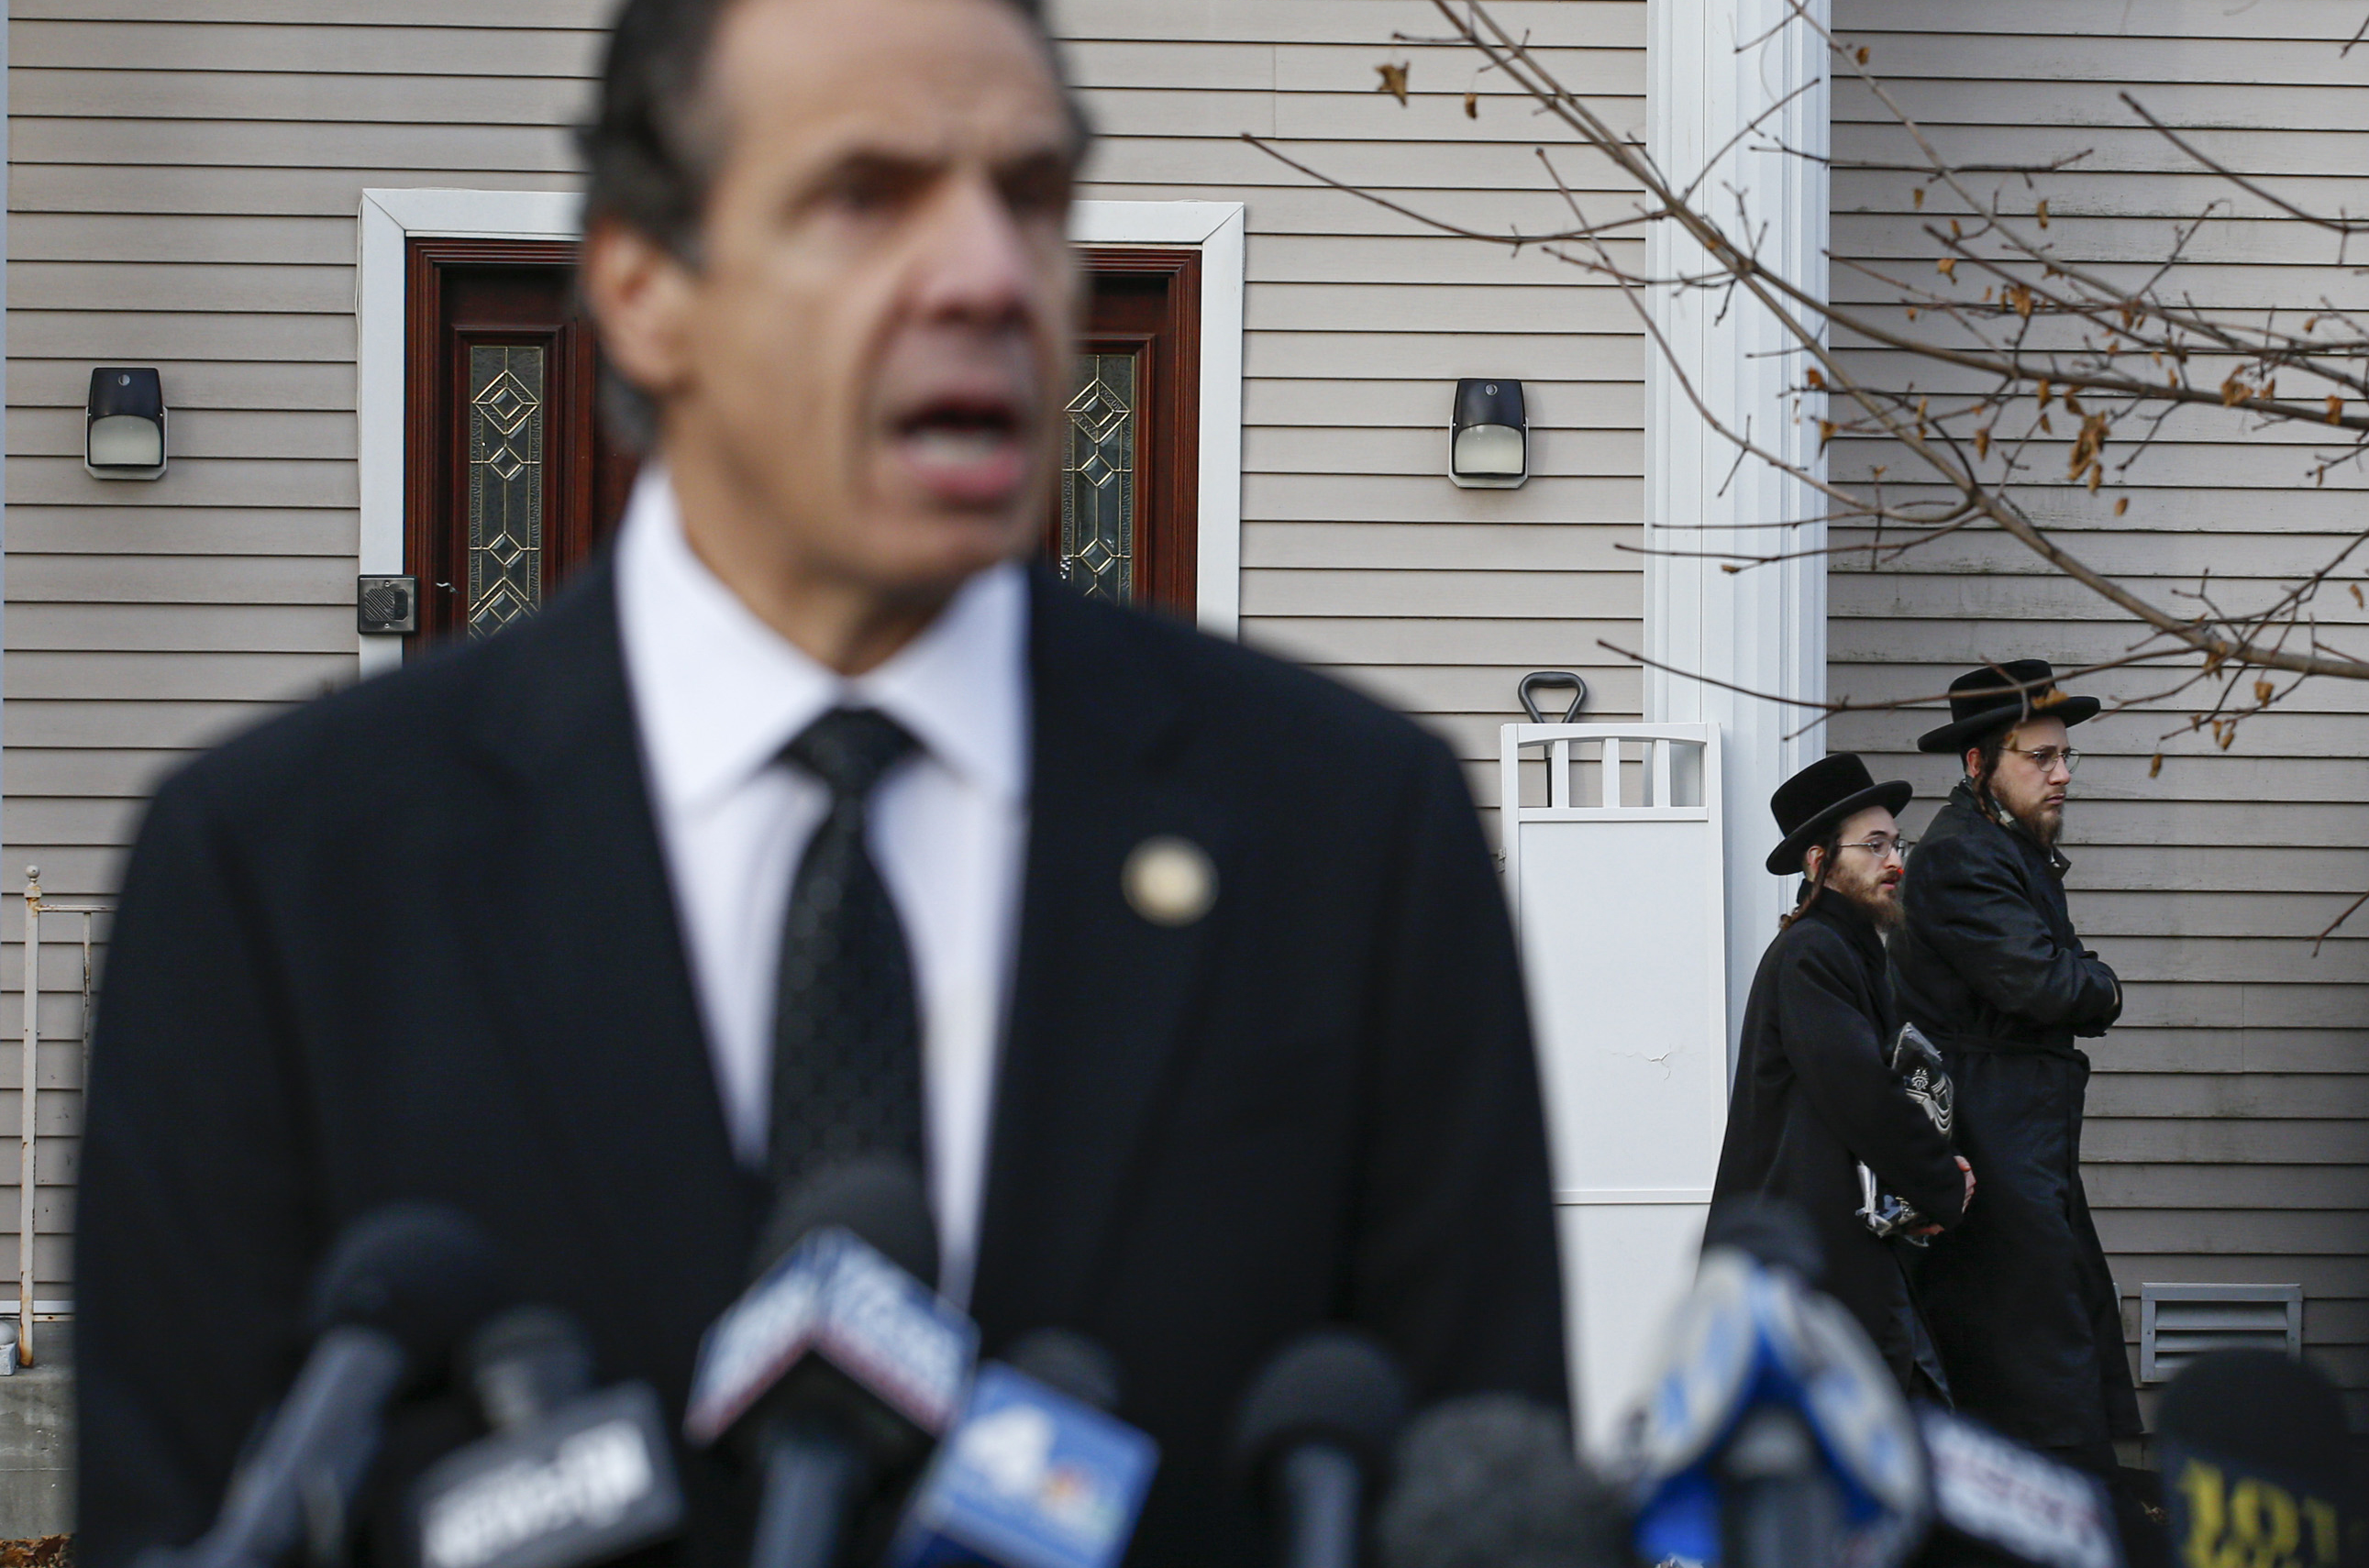 New York Governor Andrew Cuomo speaks to the media outside the home of Rabbi Chaim Rottenberg in Monsey, New York on Dec. 29, 2019.